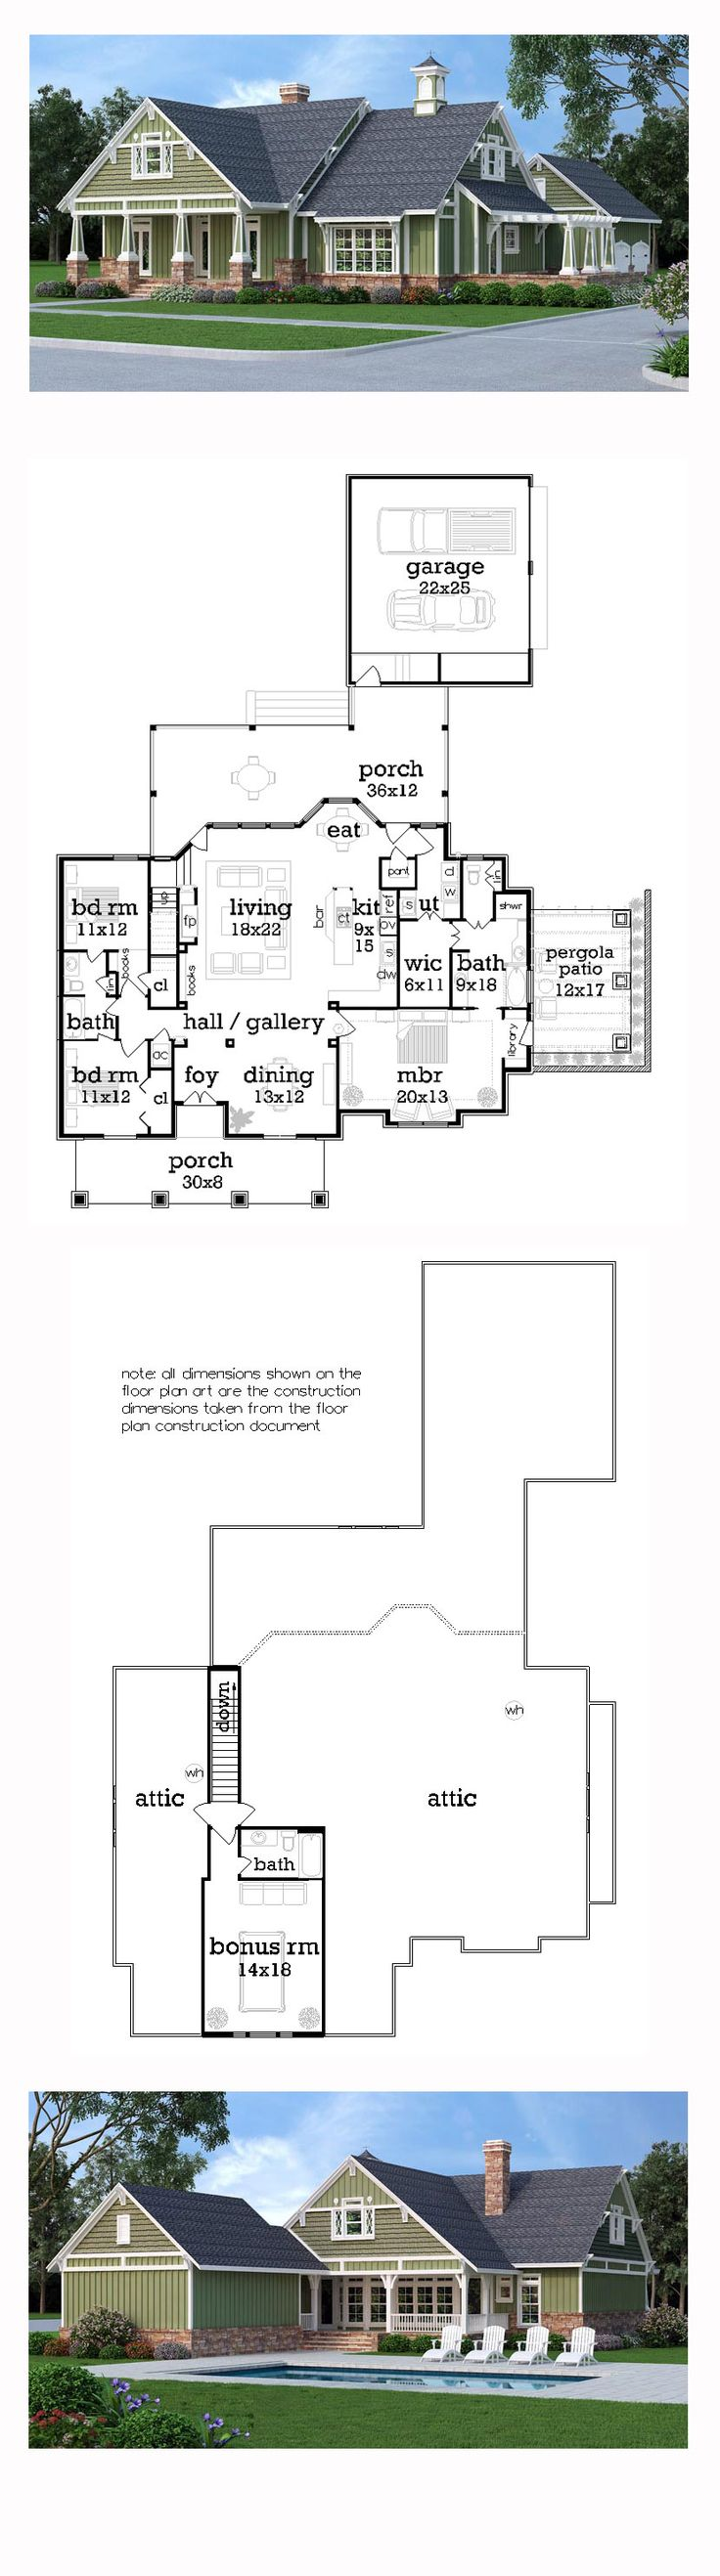 New Craftsman House Plan 65999   Total Living Area: 1976 sq. ft., 3 bedrooms and 2 bathrooms. #craftsmanhome